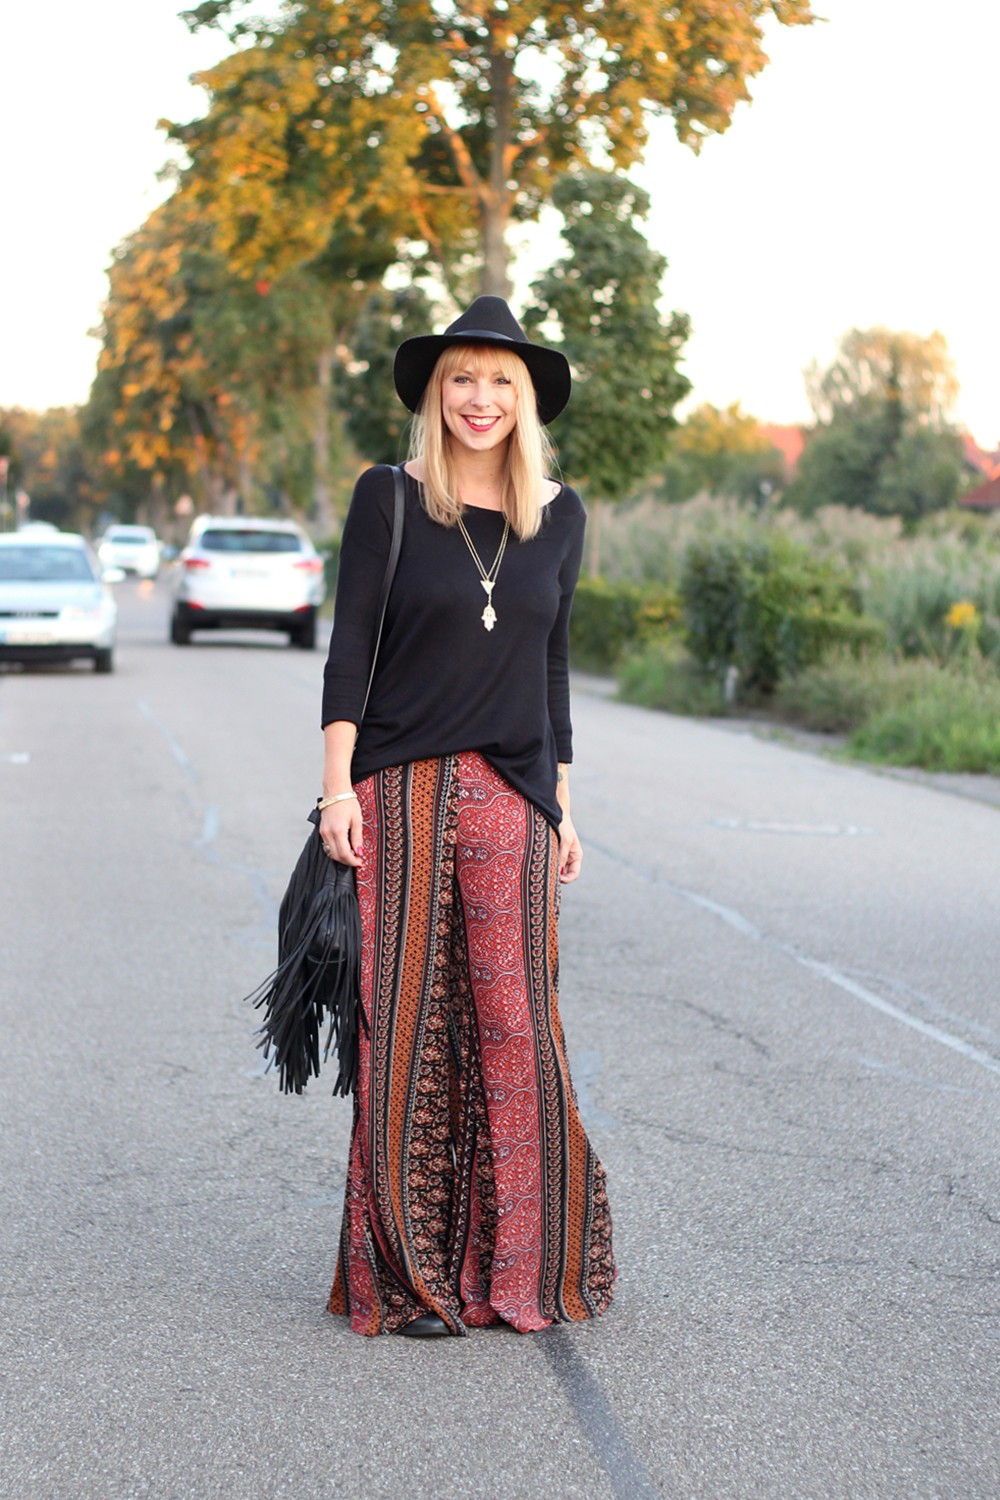 Fashinblogger Karlsruhe Mannheim Outfit Palazzohosen Pull and Bear Sweater Hut Fransentasche 5